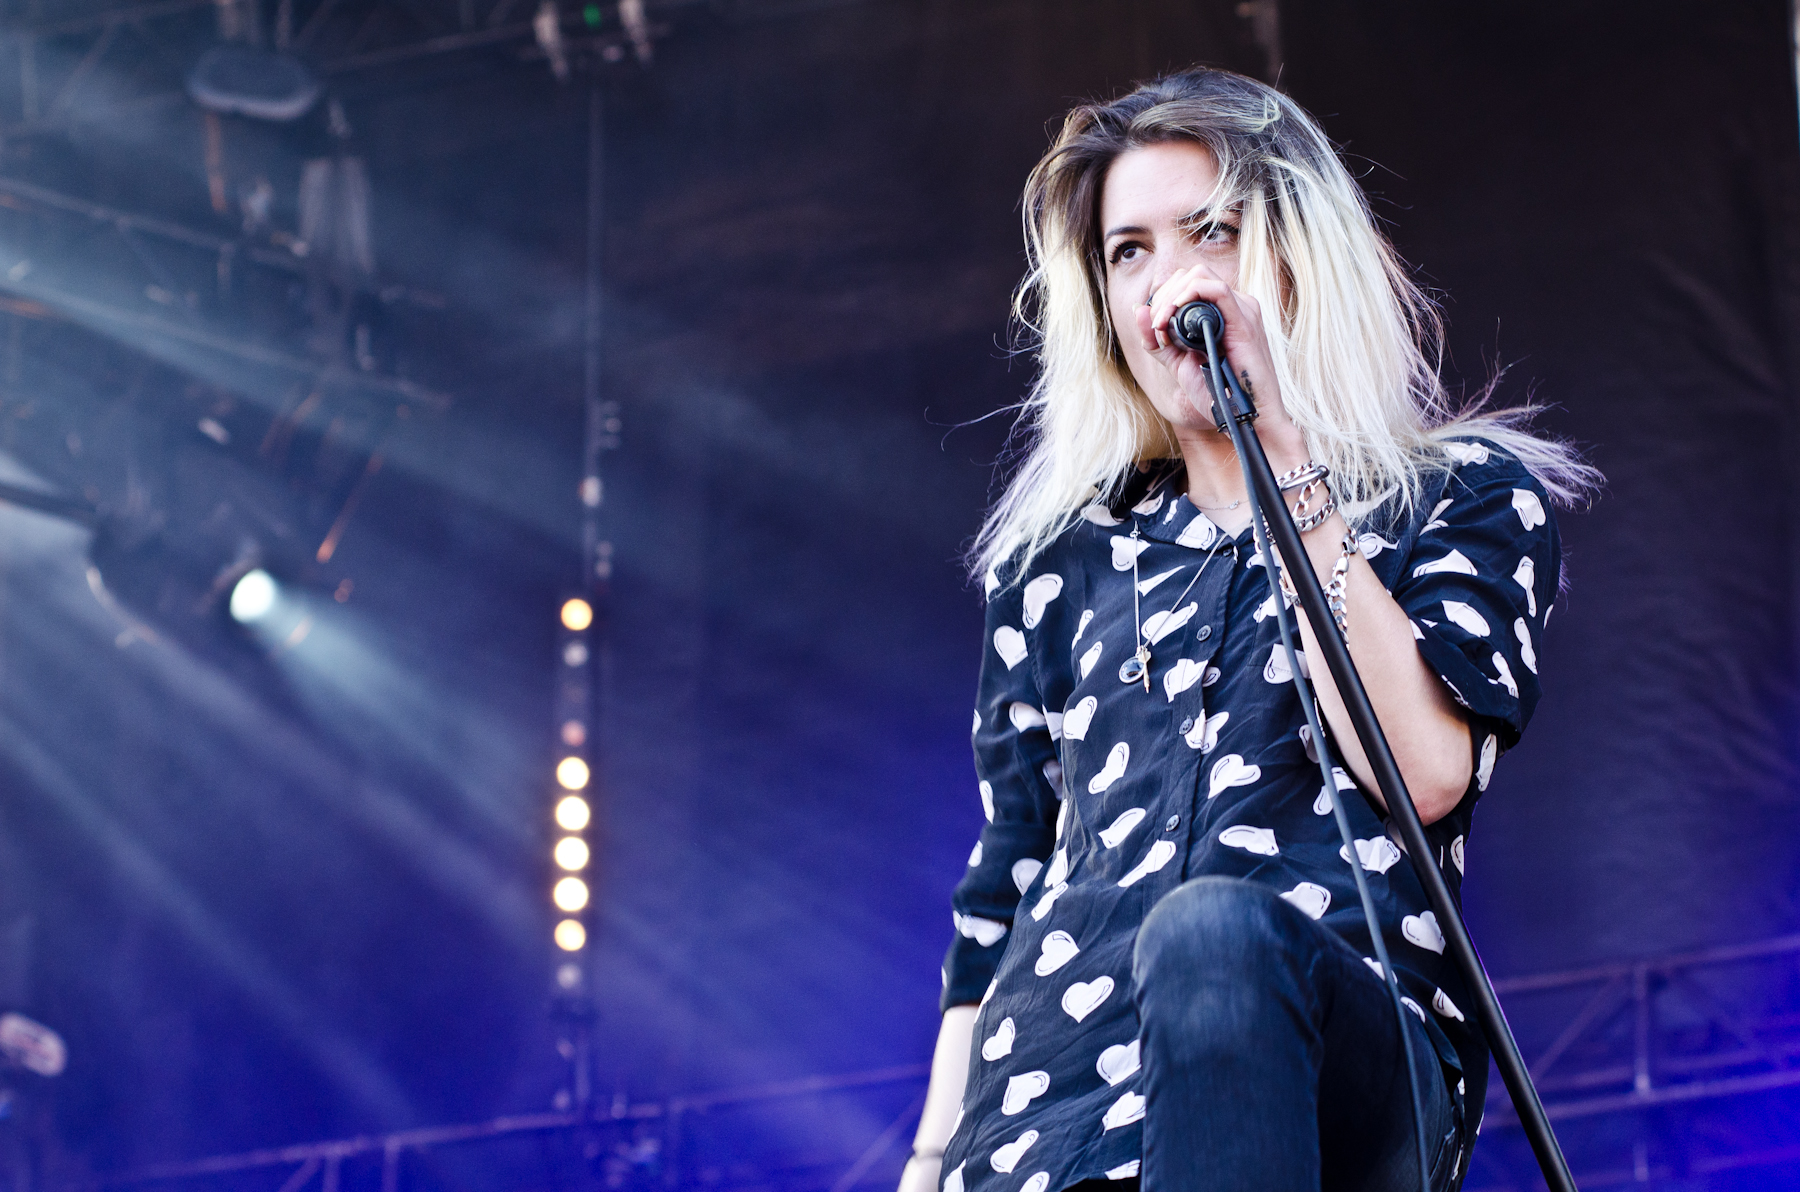 Osheaga Day 1: Florence + the Machine, Of Monsters and Men, The Decemberists and more [GALLERY]